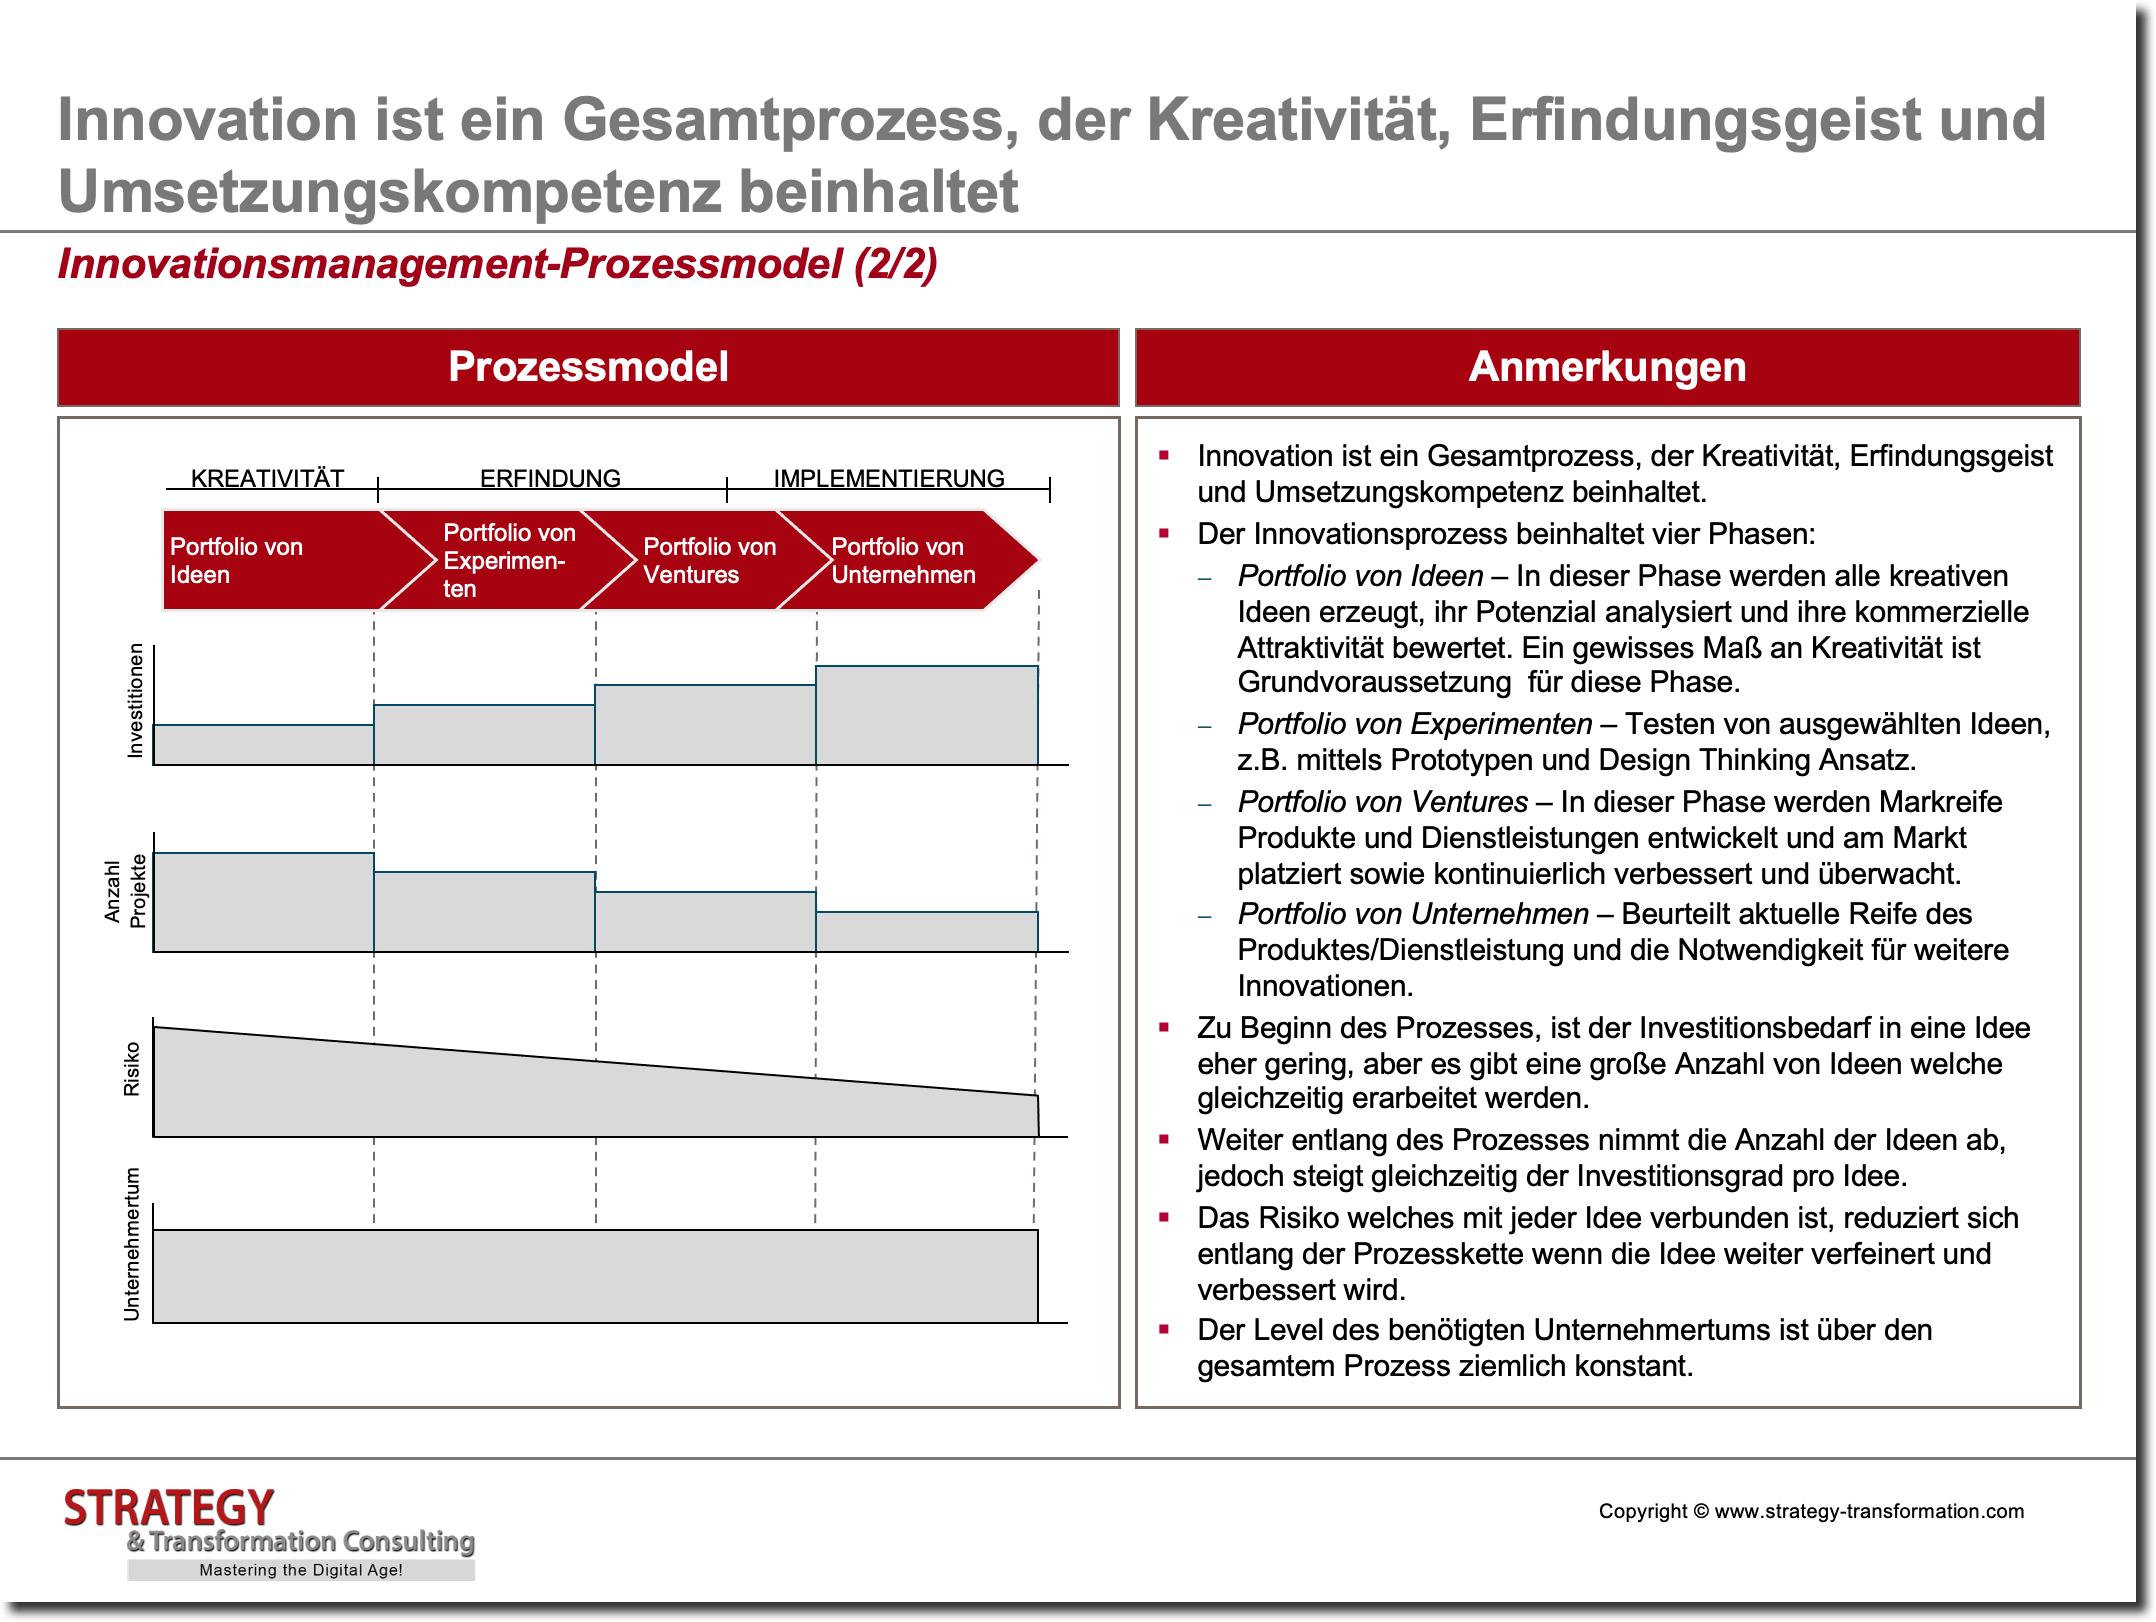 Innovationsmanagement_Prozessmodell_2 von 2